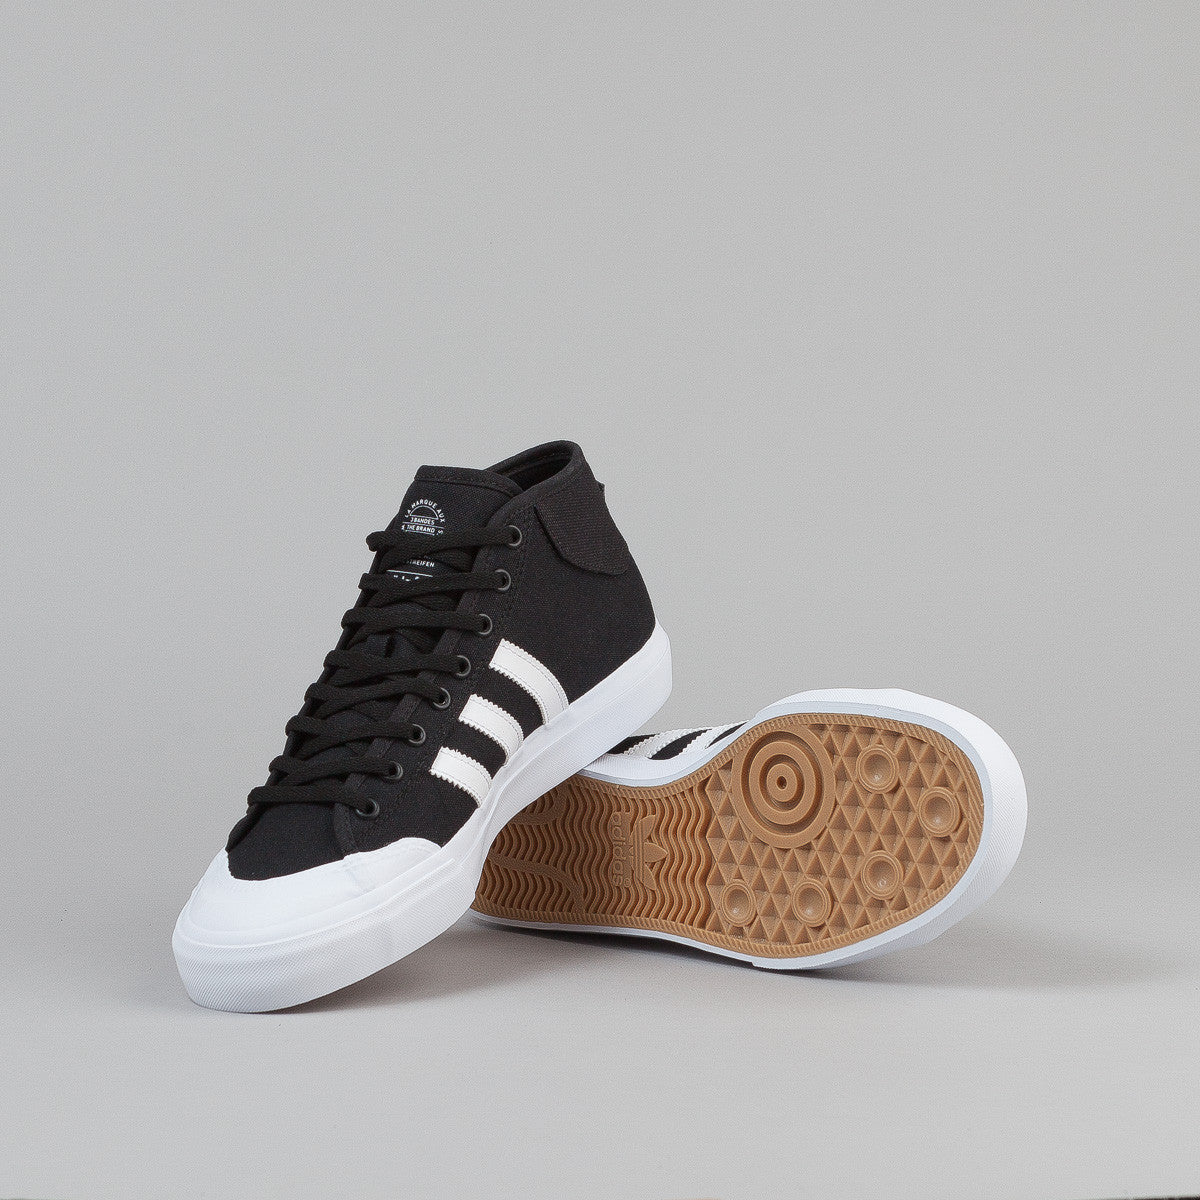 Adidas Matchcourt Mid Shoes - Core Black / FTW White / FTW White